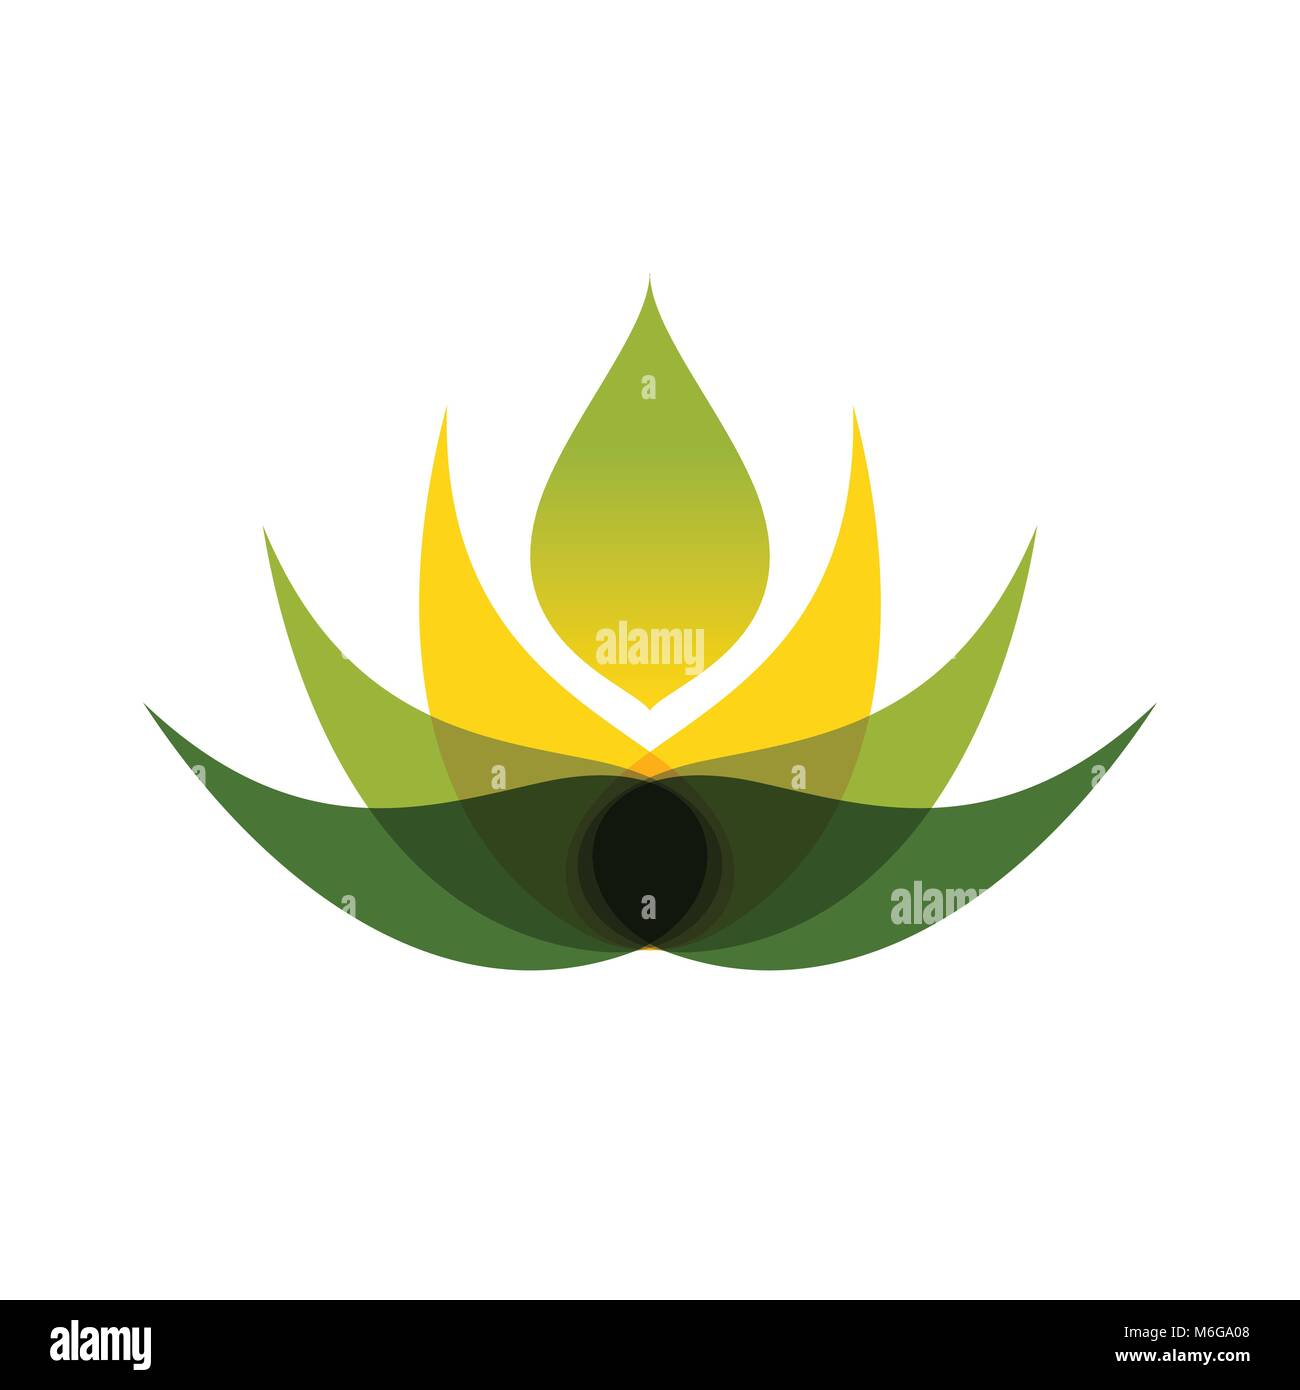 Abstract Multiply Lotus Flower Vector Symbol Graphic Logo Design